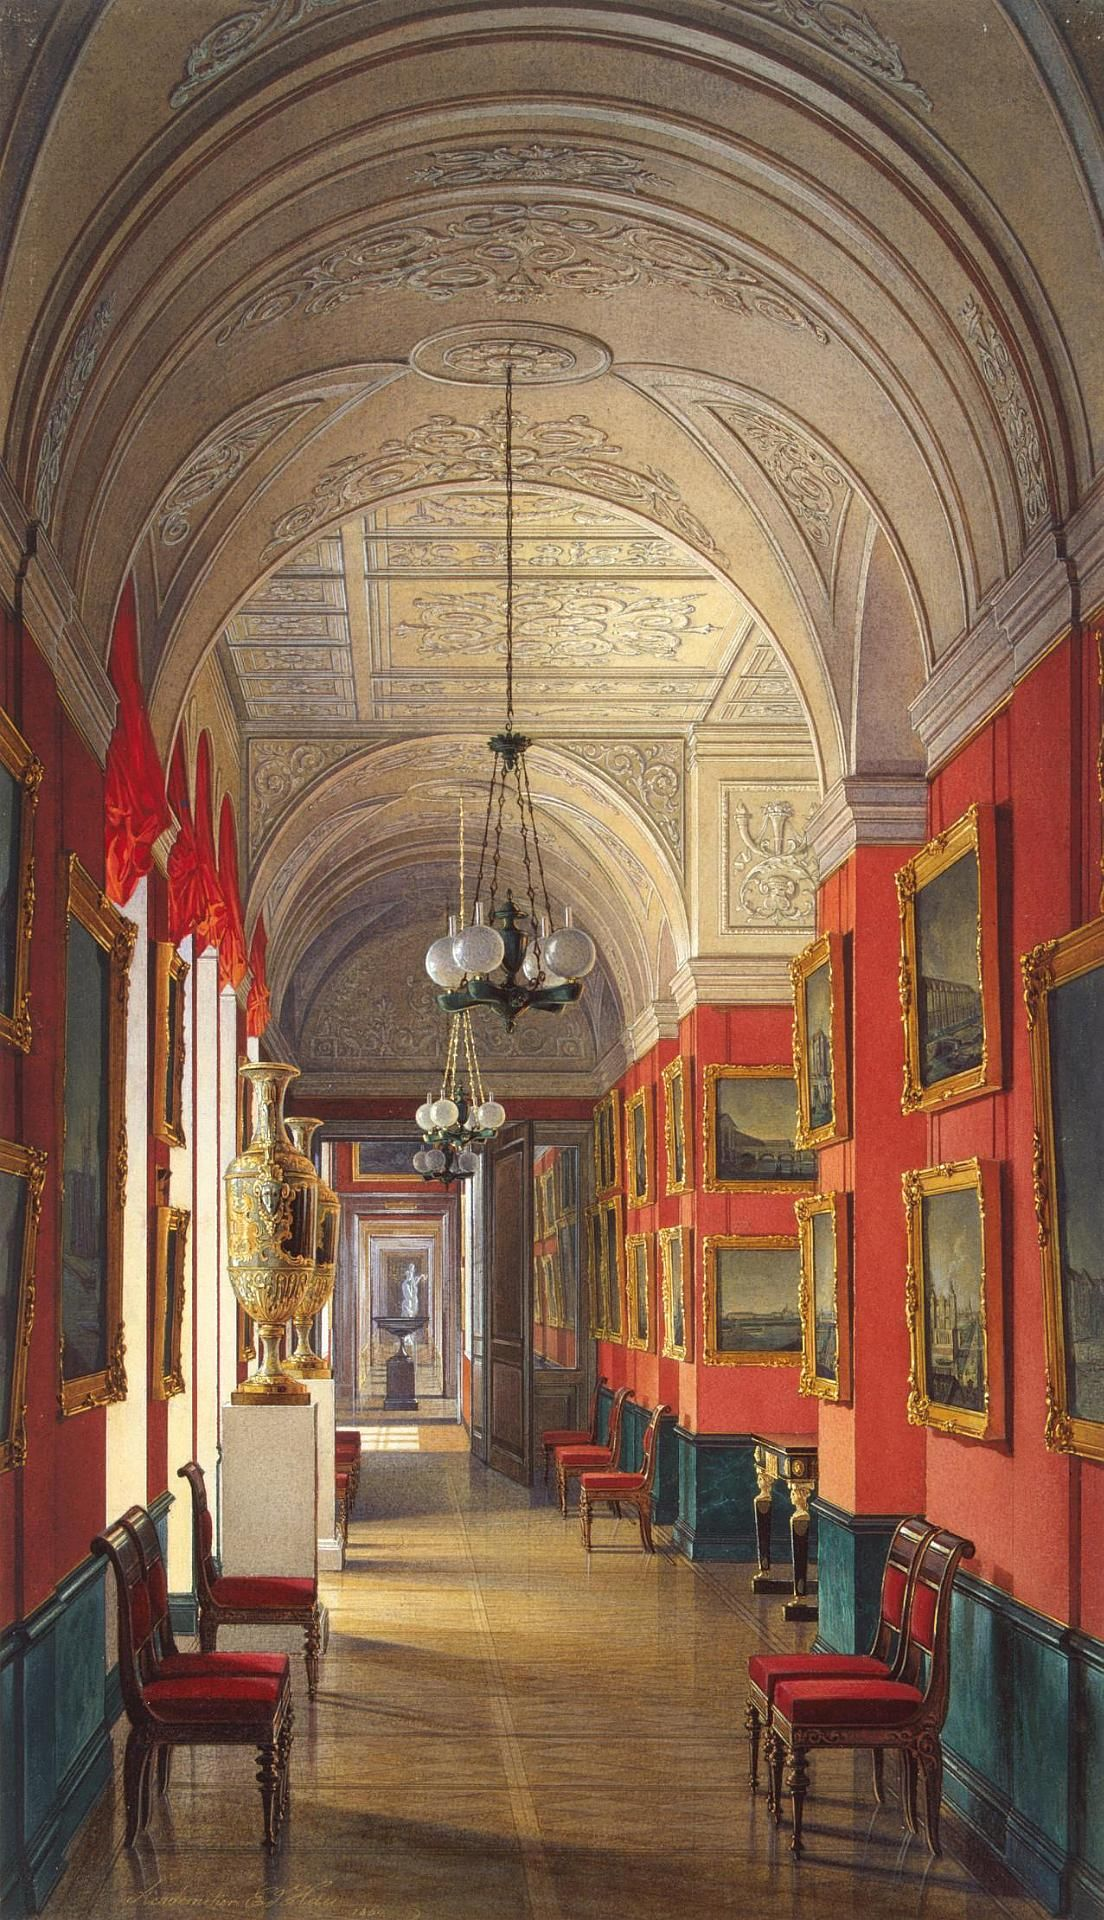 """Interiors of the Small Hermitage.The Gallery of St Petersburg's Views Hau, Edward Petrovich Russia, 1864 """""""